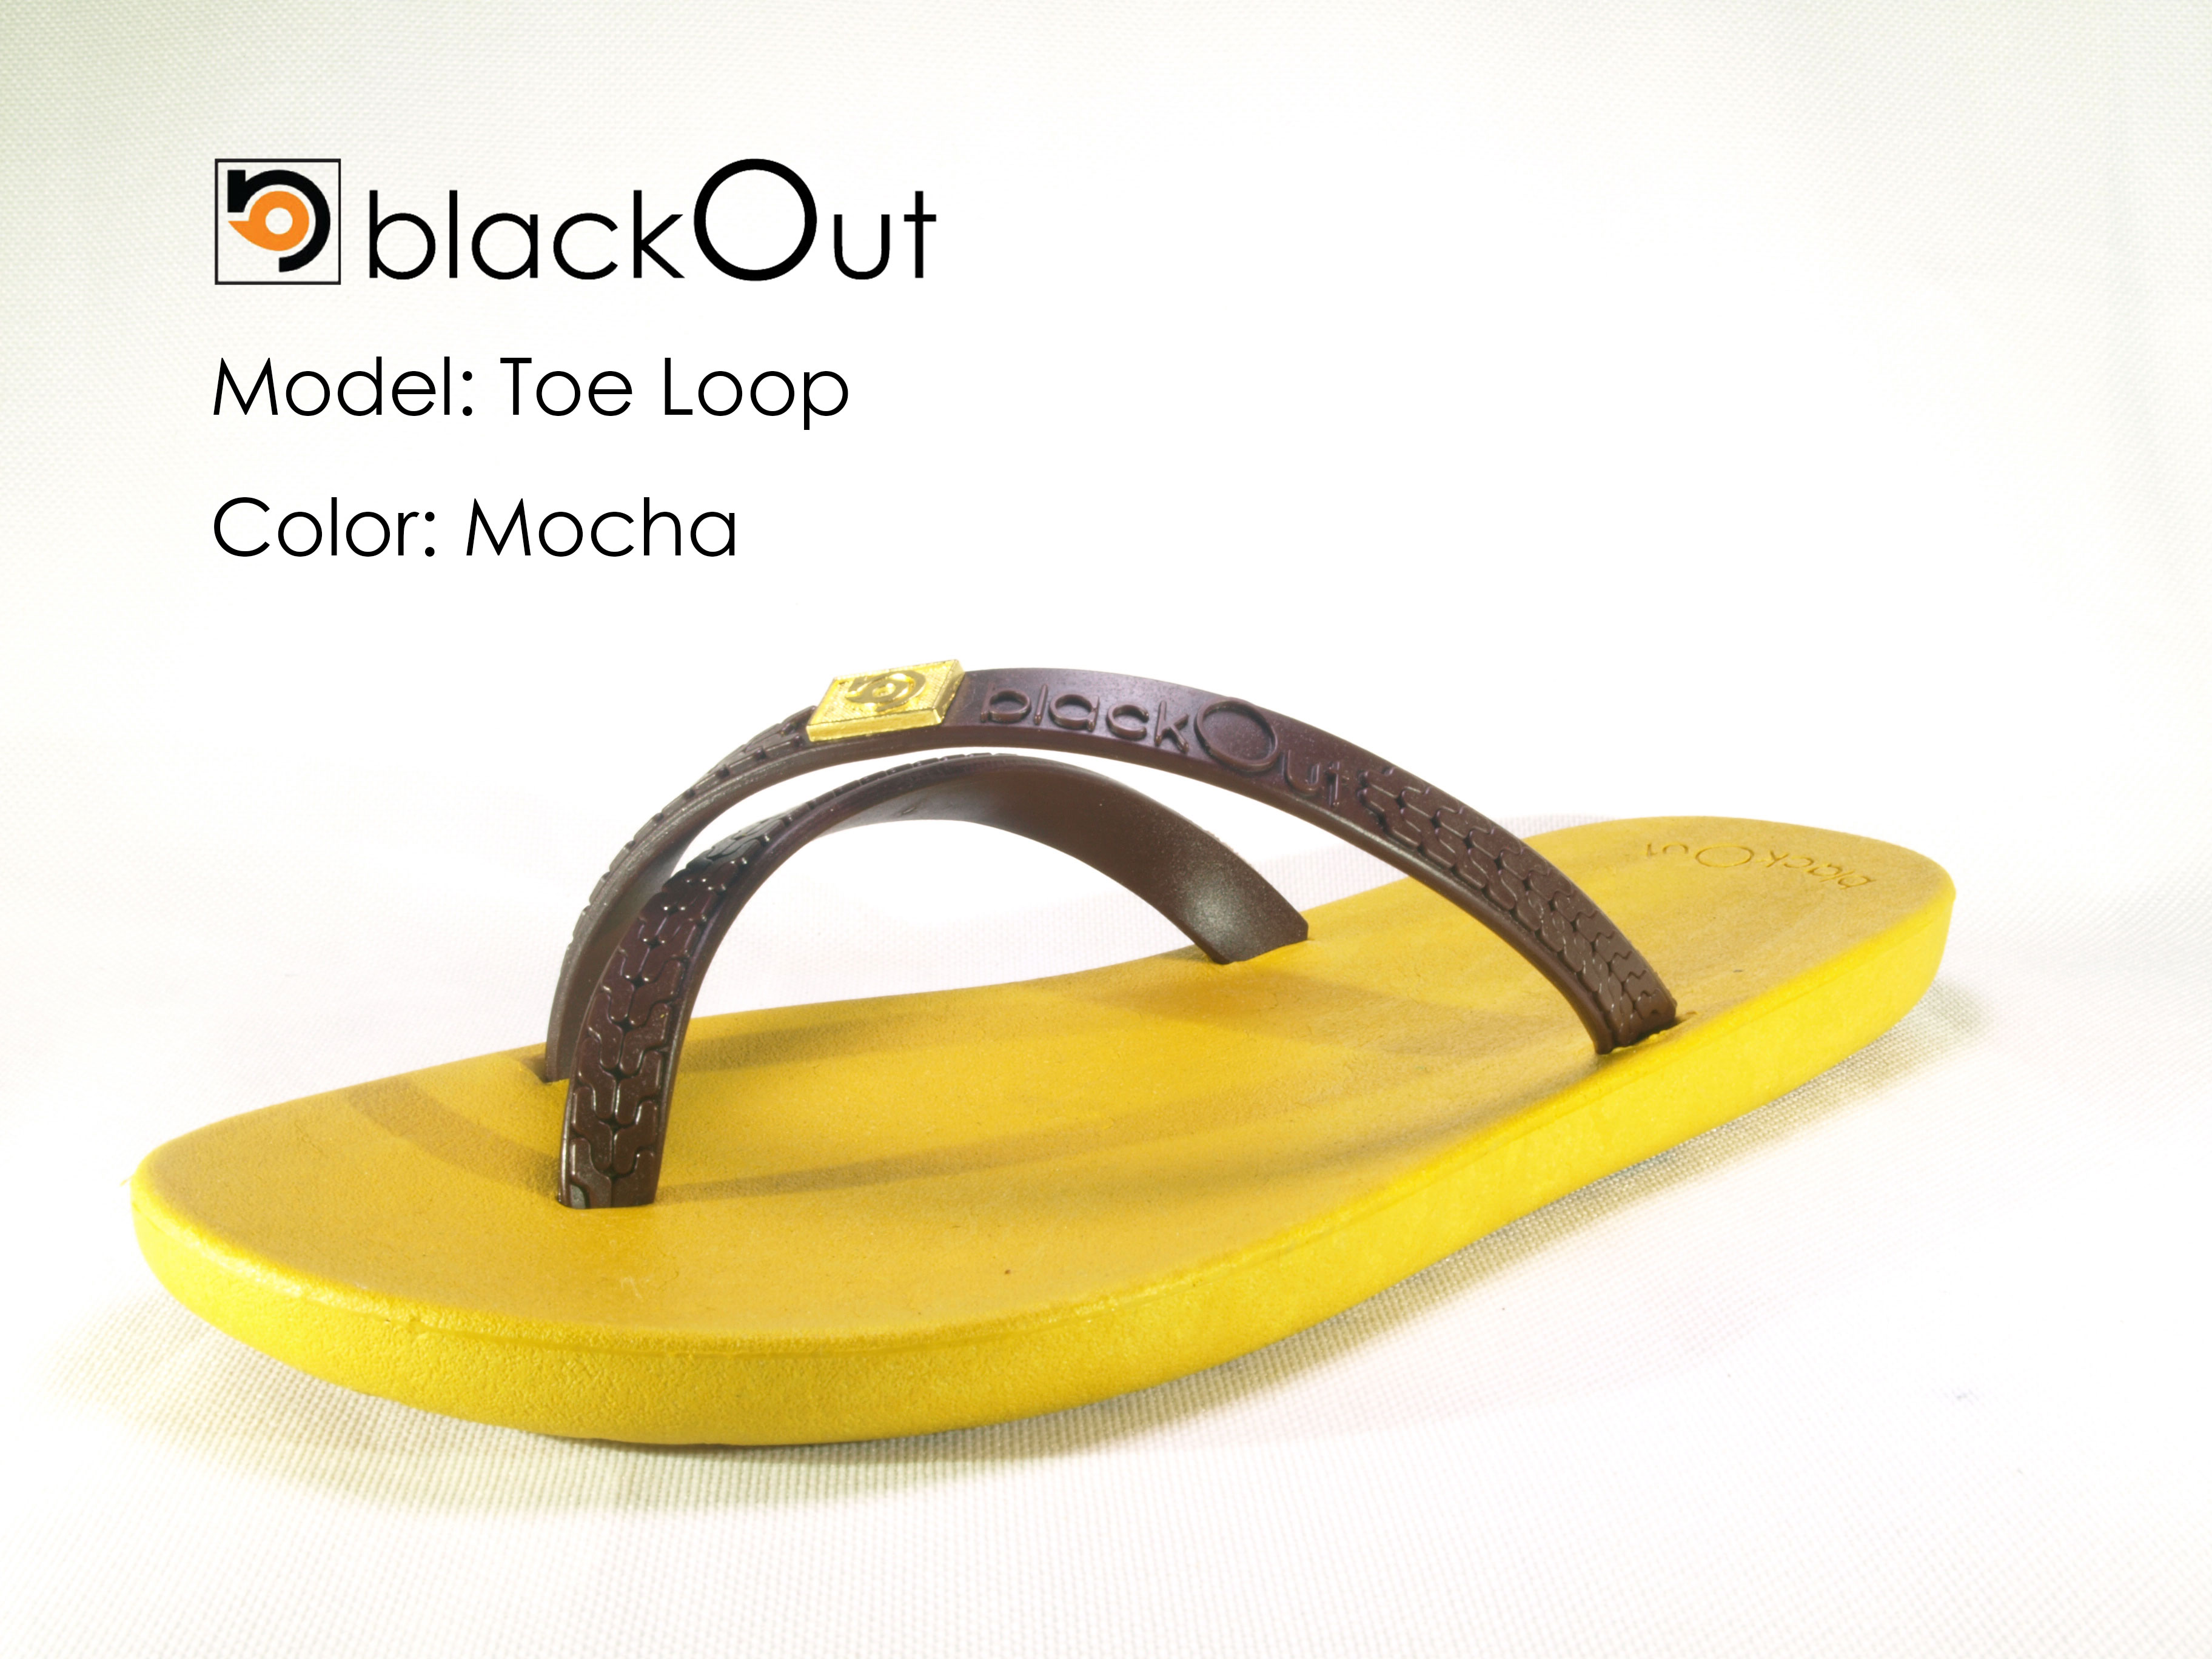 TOELOOP-blackOut Brown/Mocha